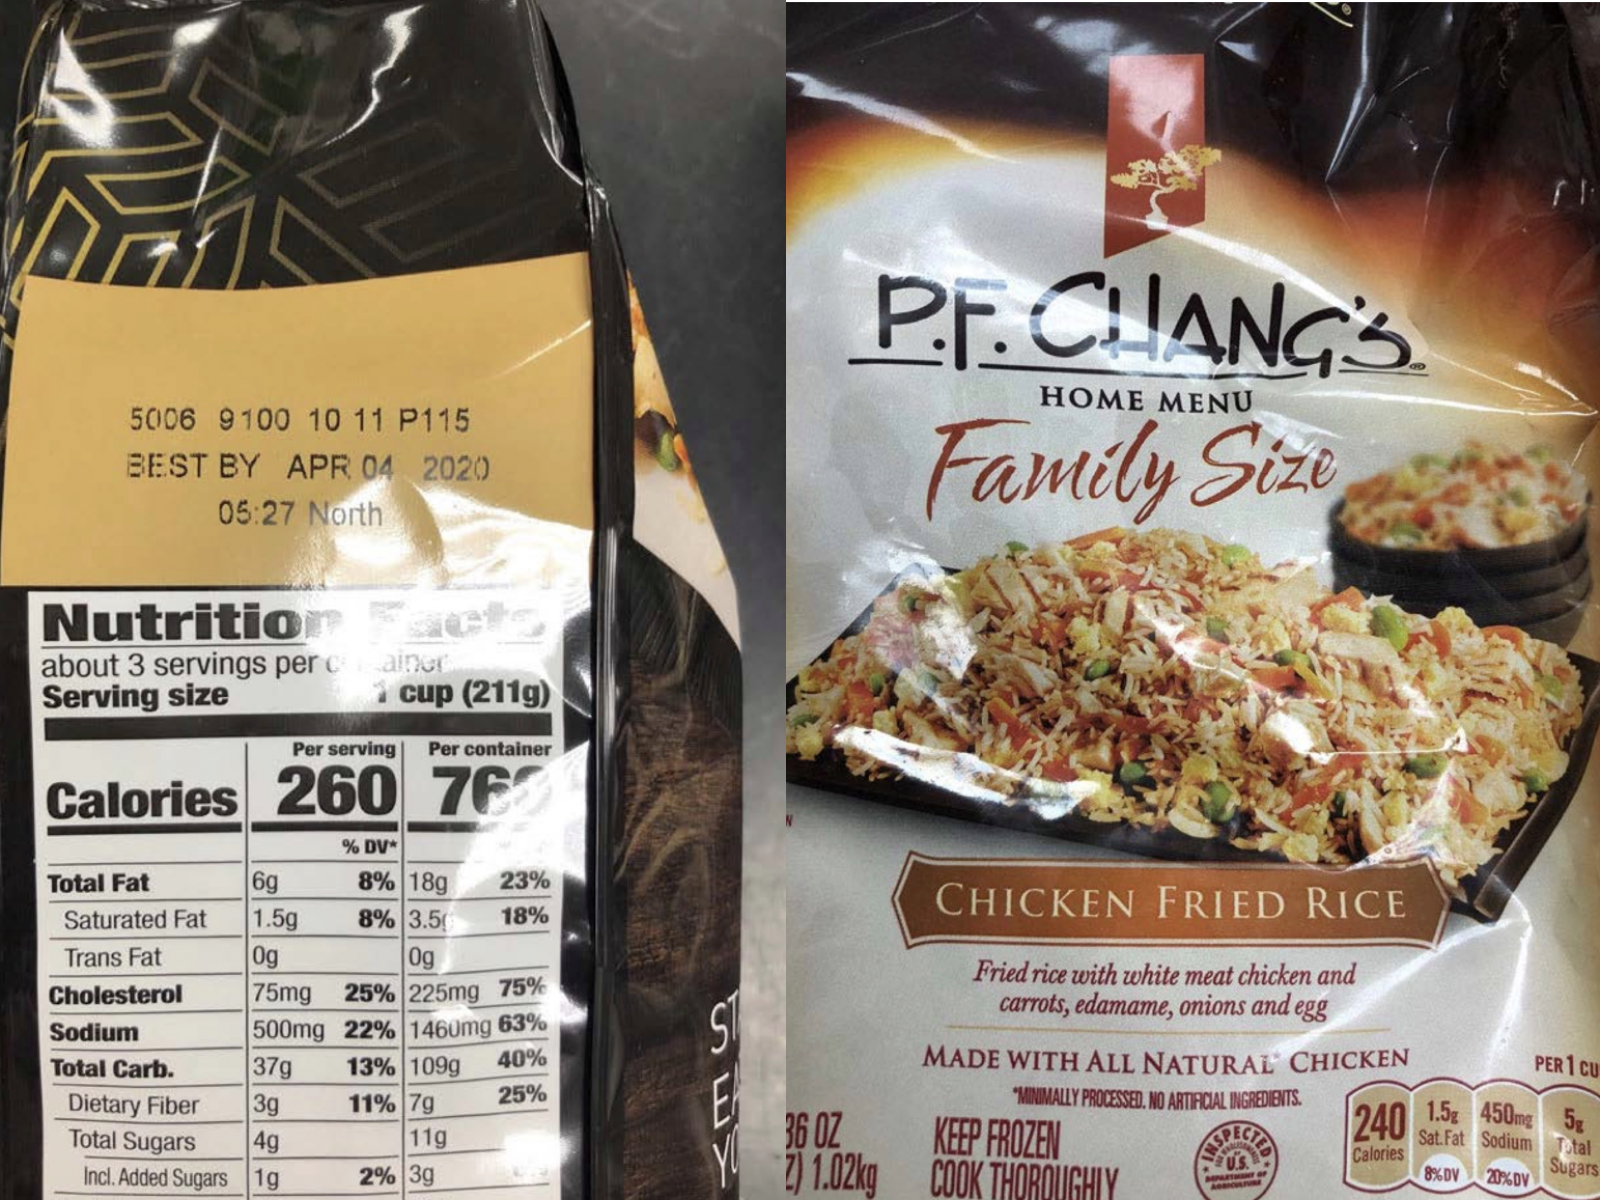 Best Frozen Pizza 2020 Nearly 2.1 Million Pounds of P.F. Chang's Frozen Dinners Recalled